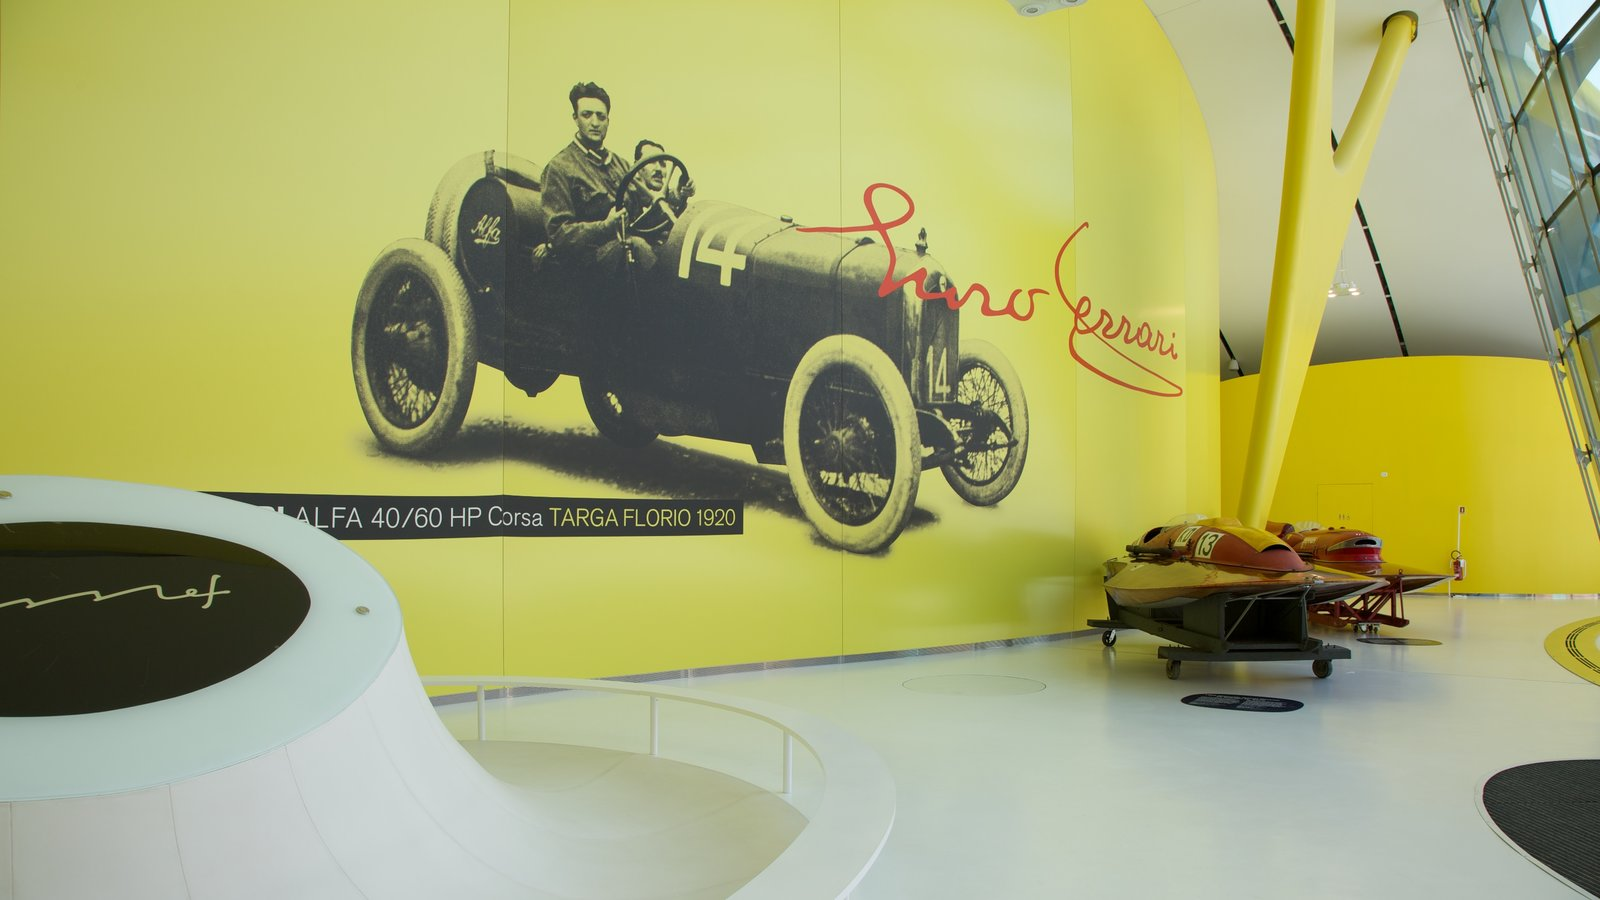 Museo Casa Enzo Ferrari showing interior views